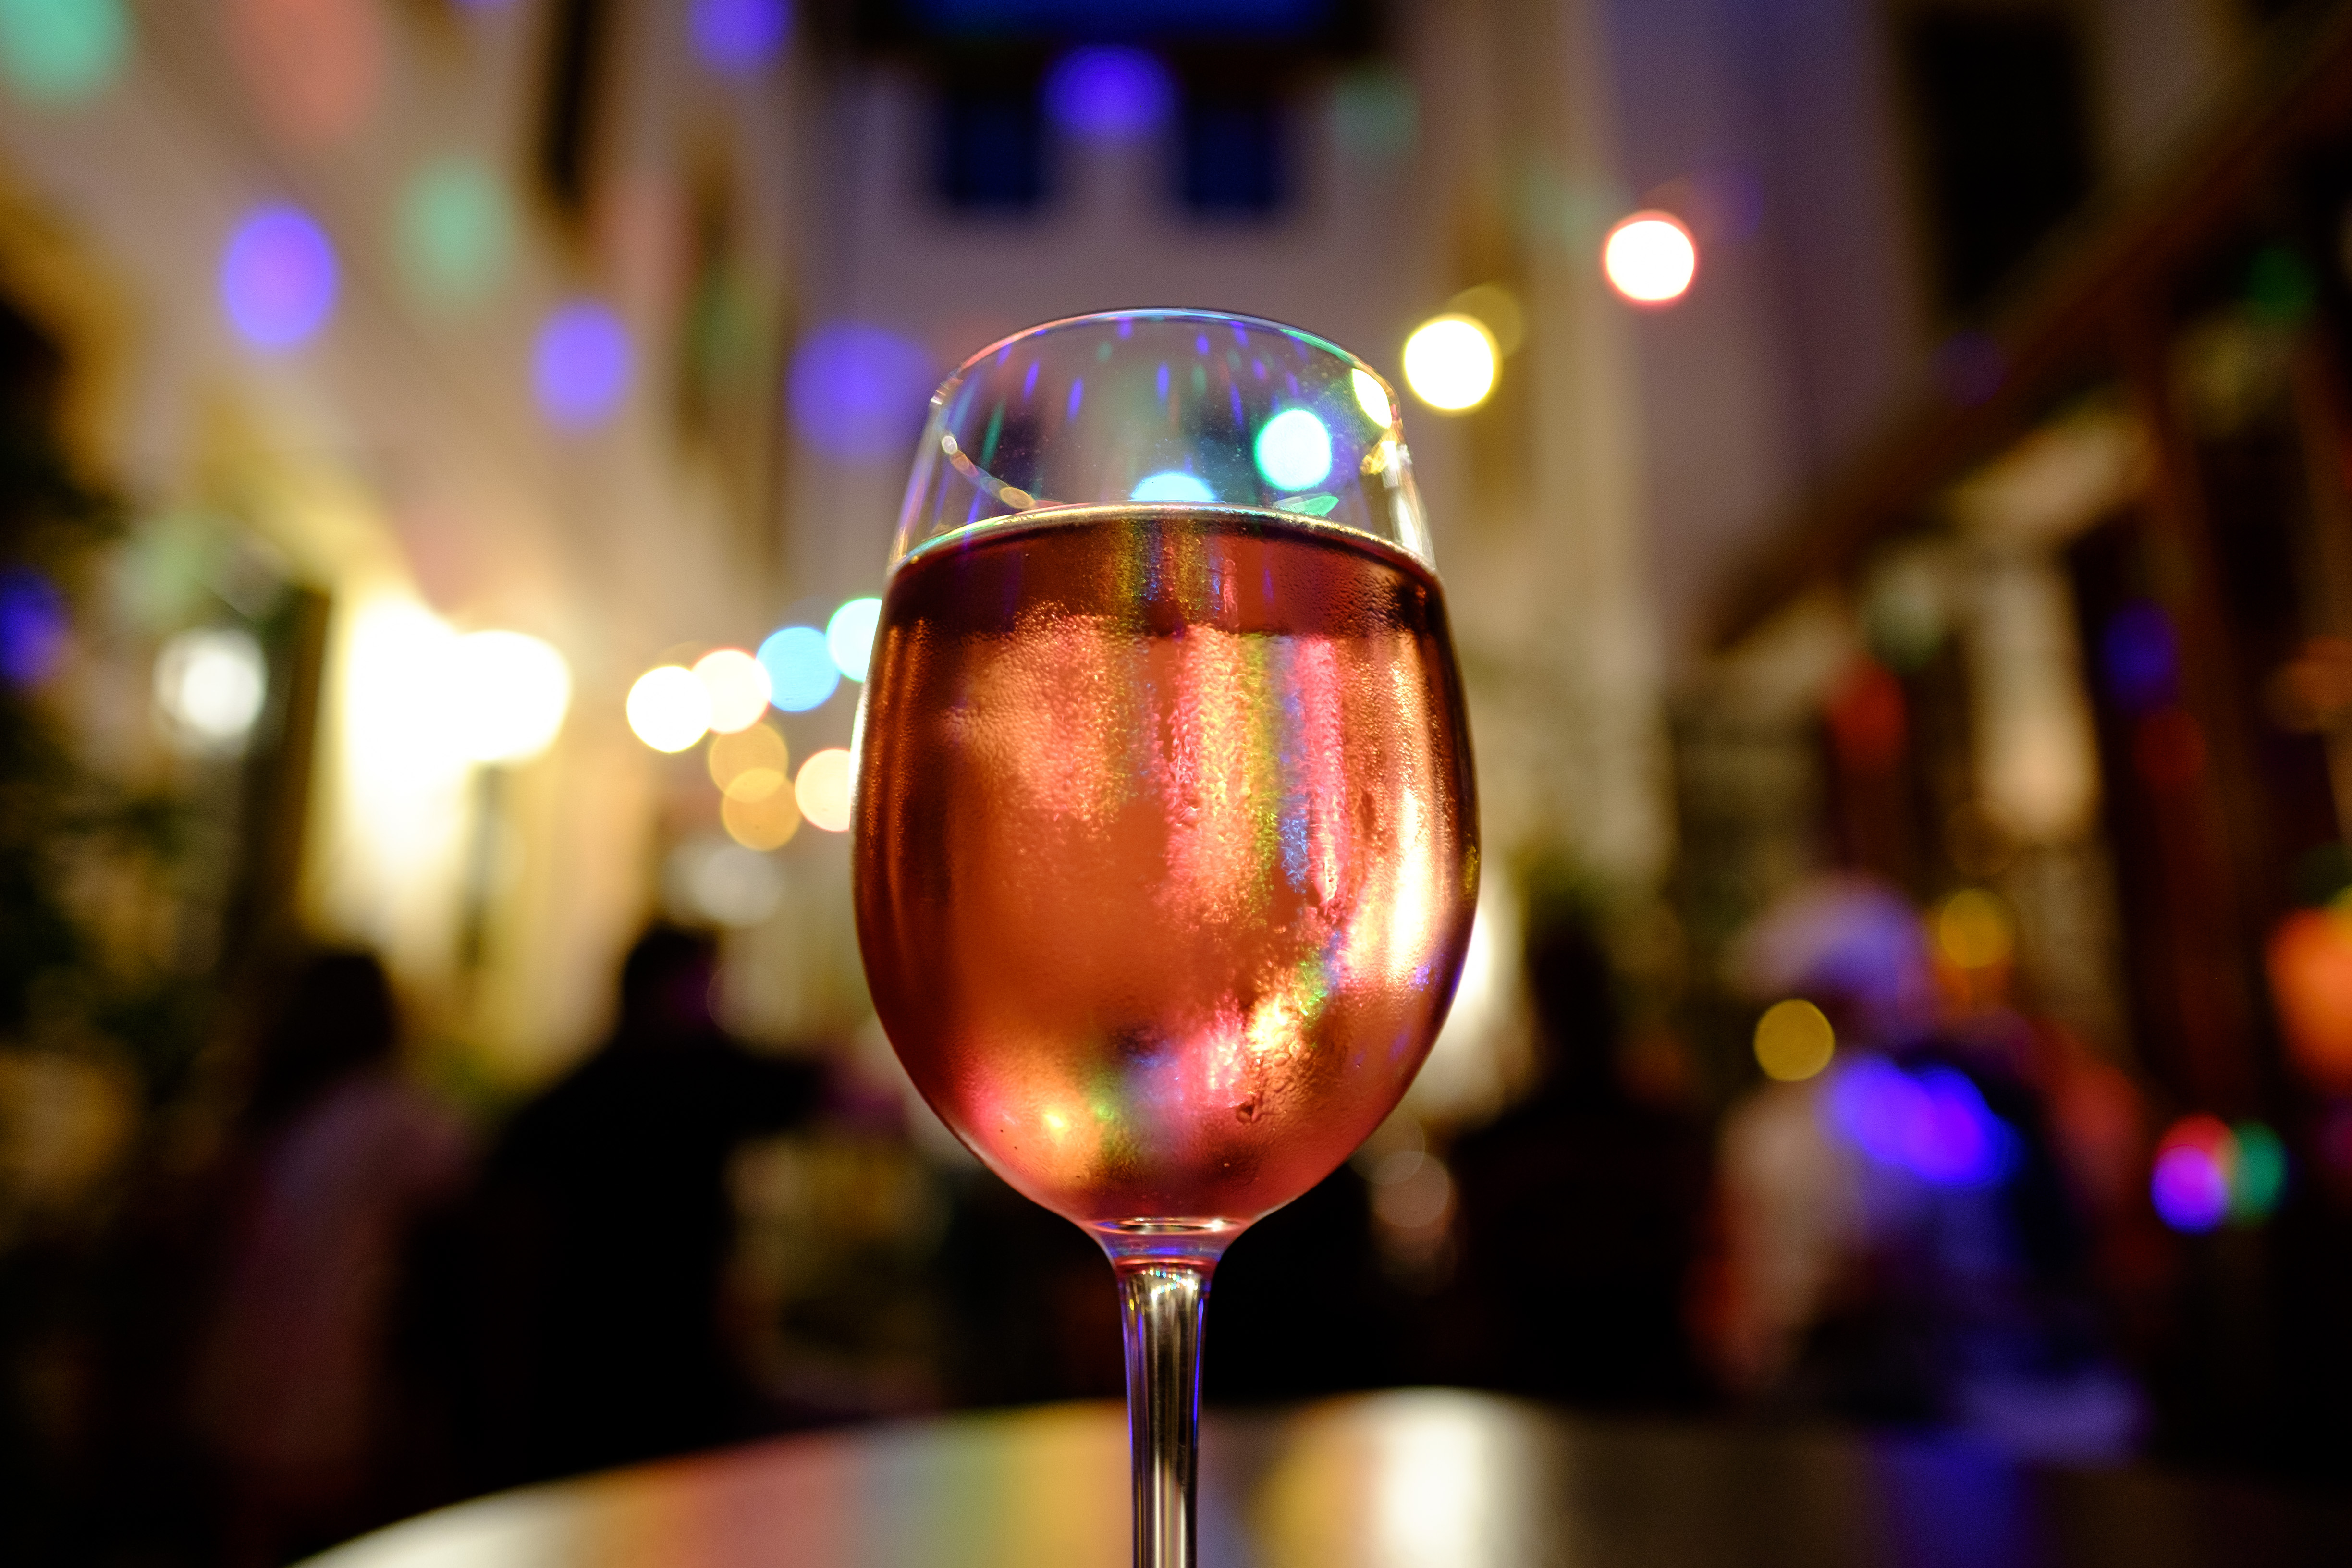 A close up on a large glass of pink wine with a twinkly night time backdrop